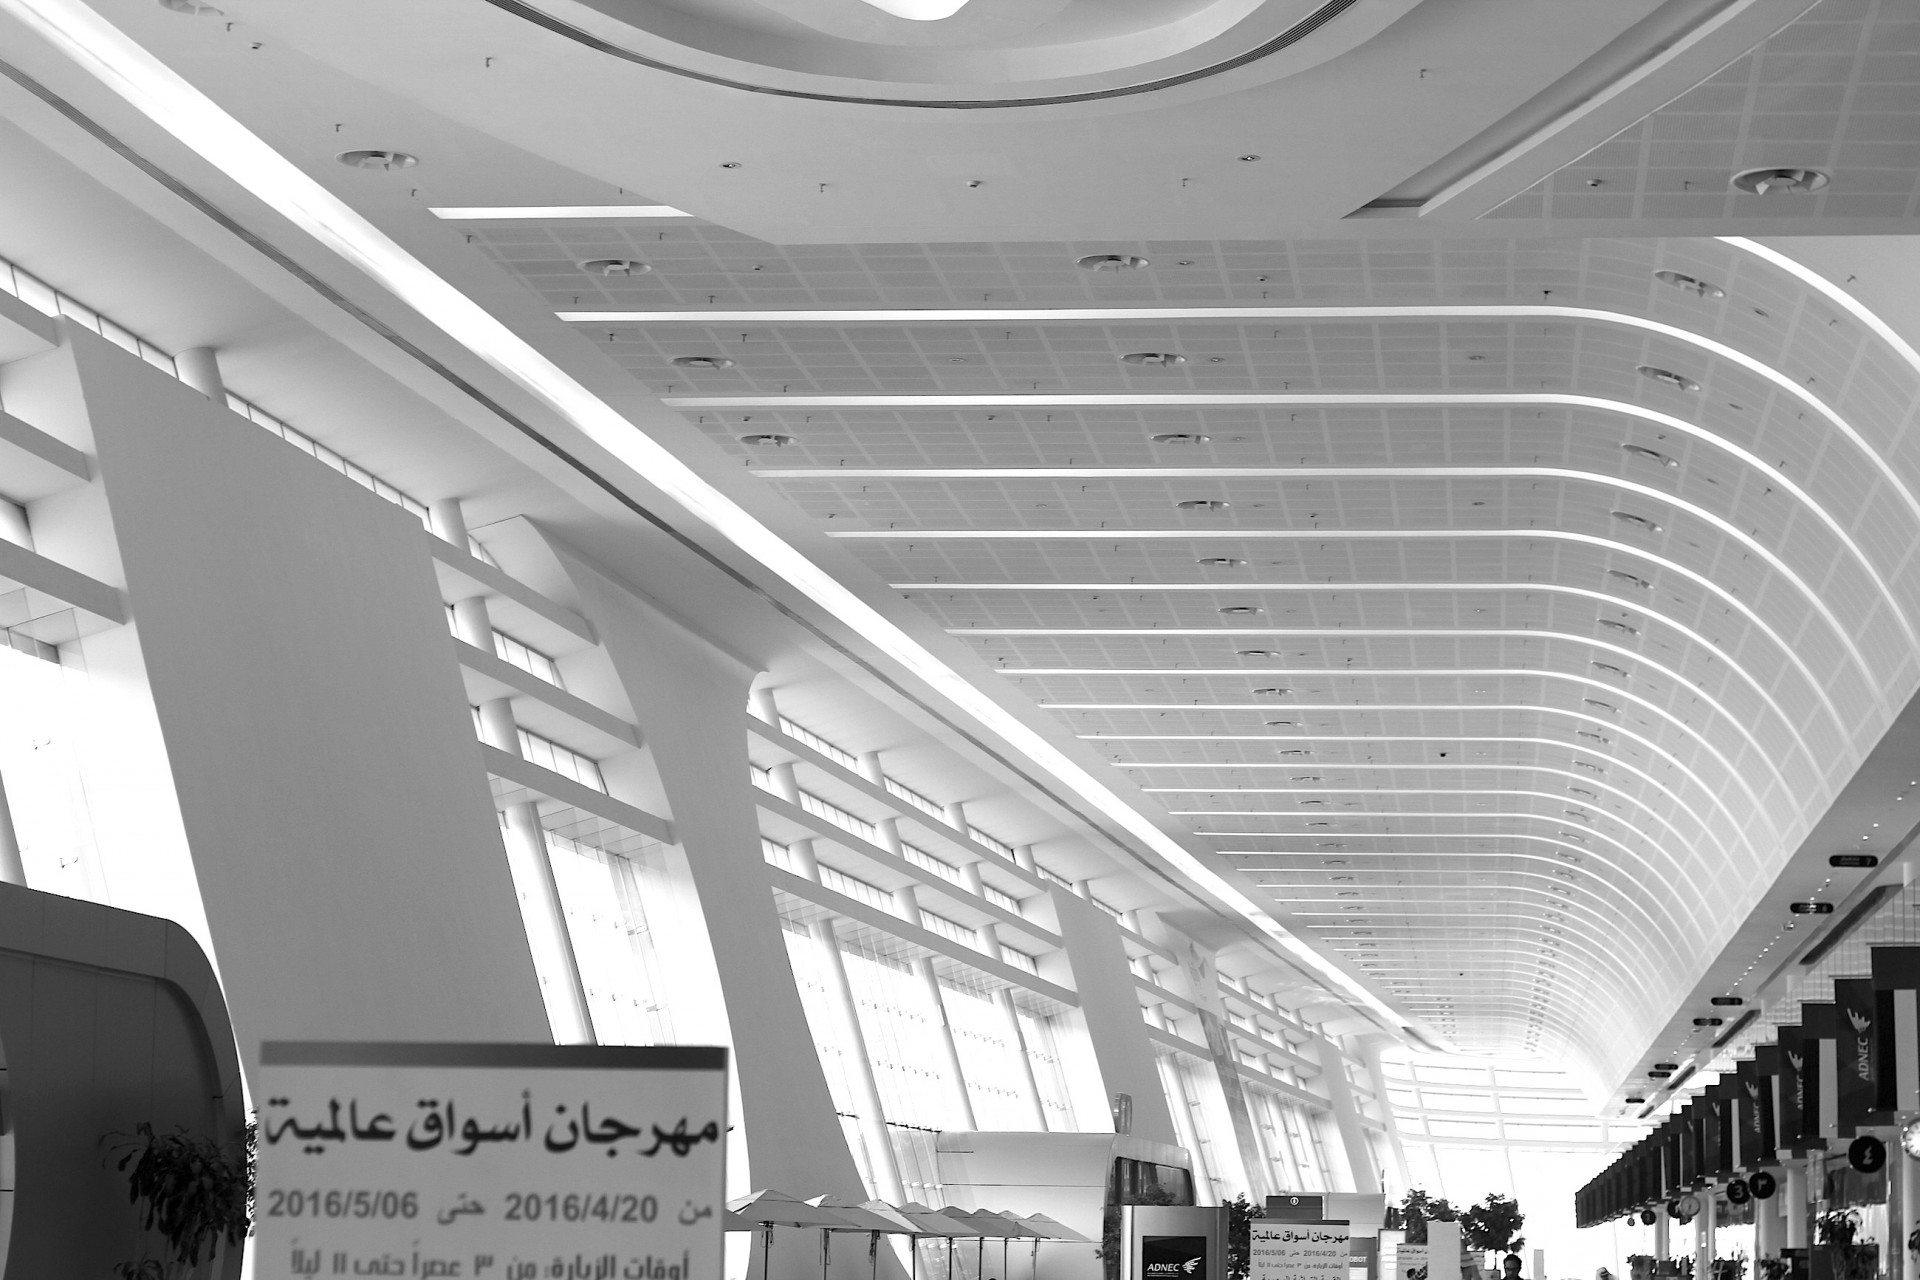 White and wide.  The Abu Dhabi National Exhibition Centre, host of the Abu Dhabi International Book Fair